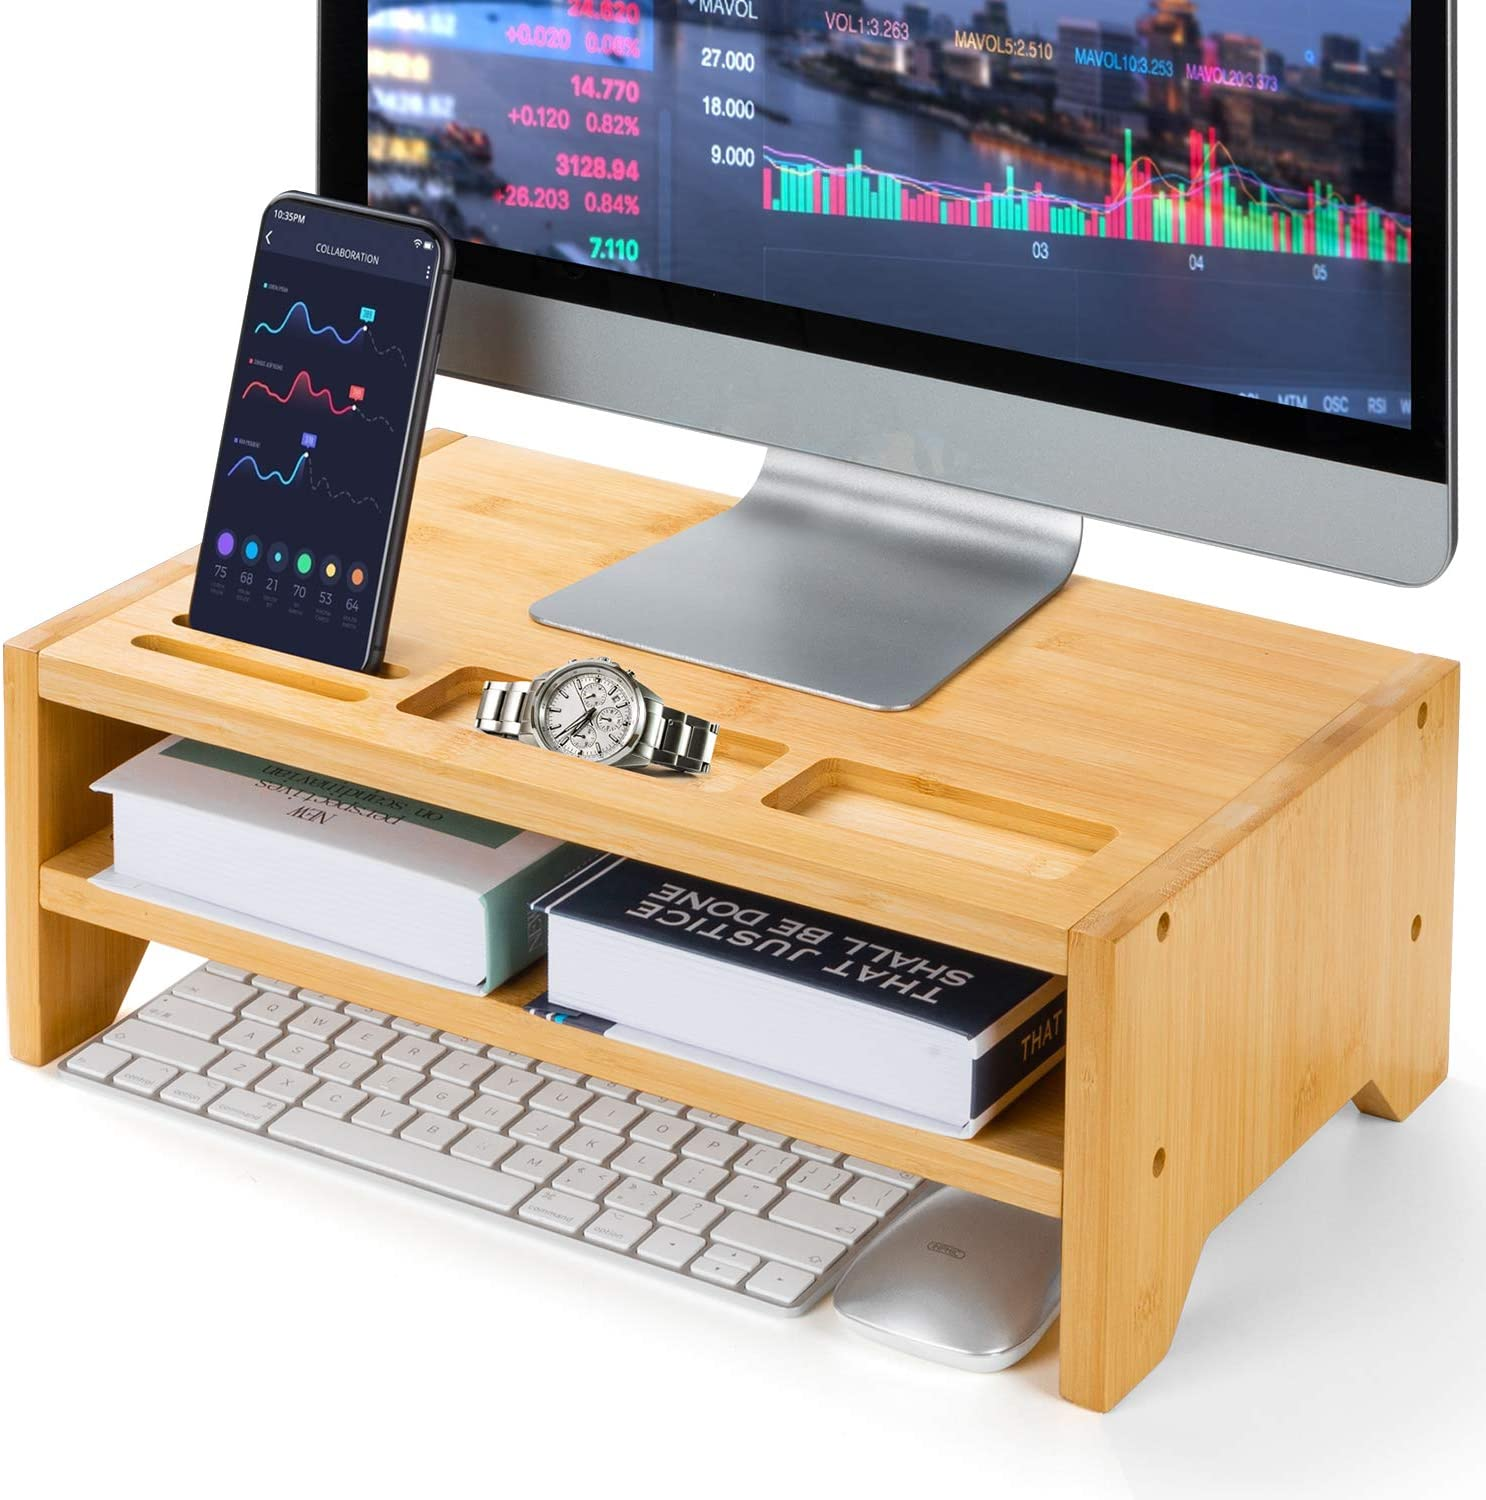 2-Tier Bamboo Desk Monitor Riser Stand - Desk Storage Organizer for Home and Office Computer Desk Laptop Cellphone Printer Stand Desktop Container by AMADA HOMEFURNISHING